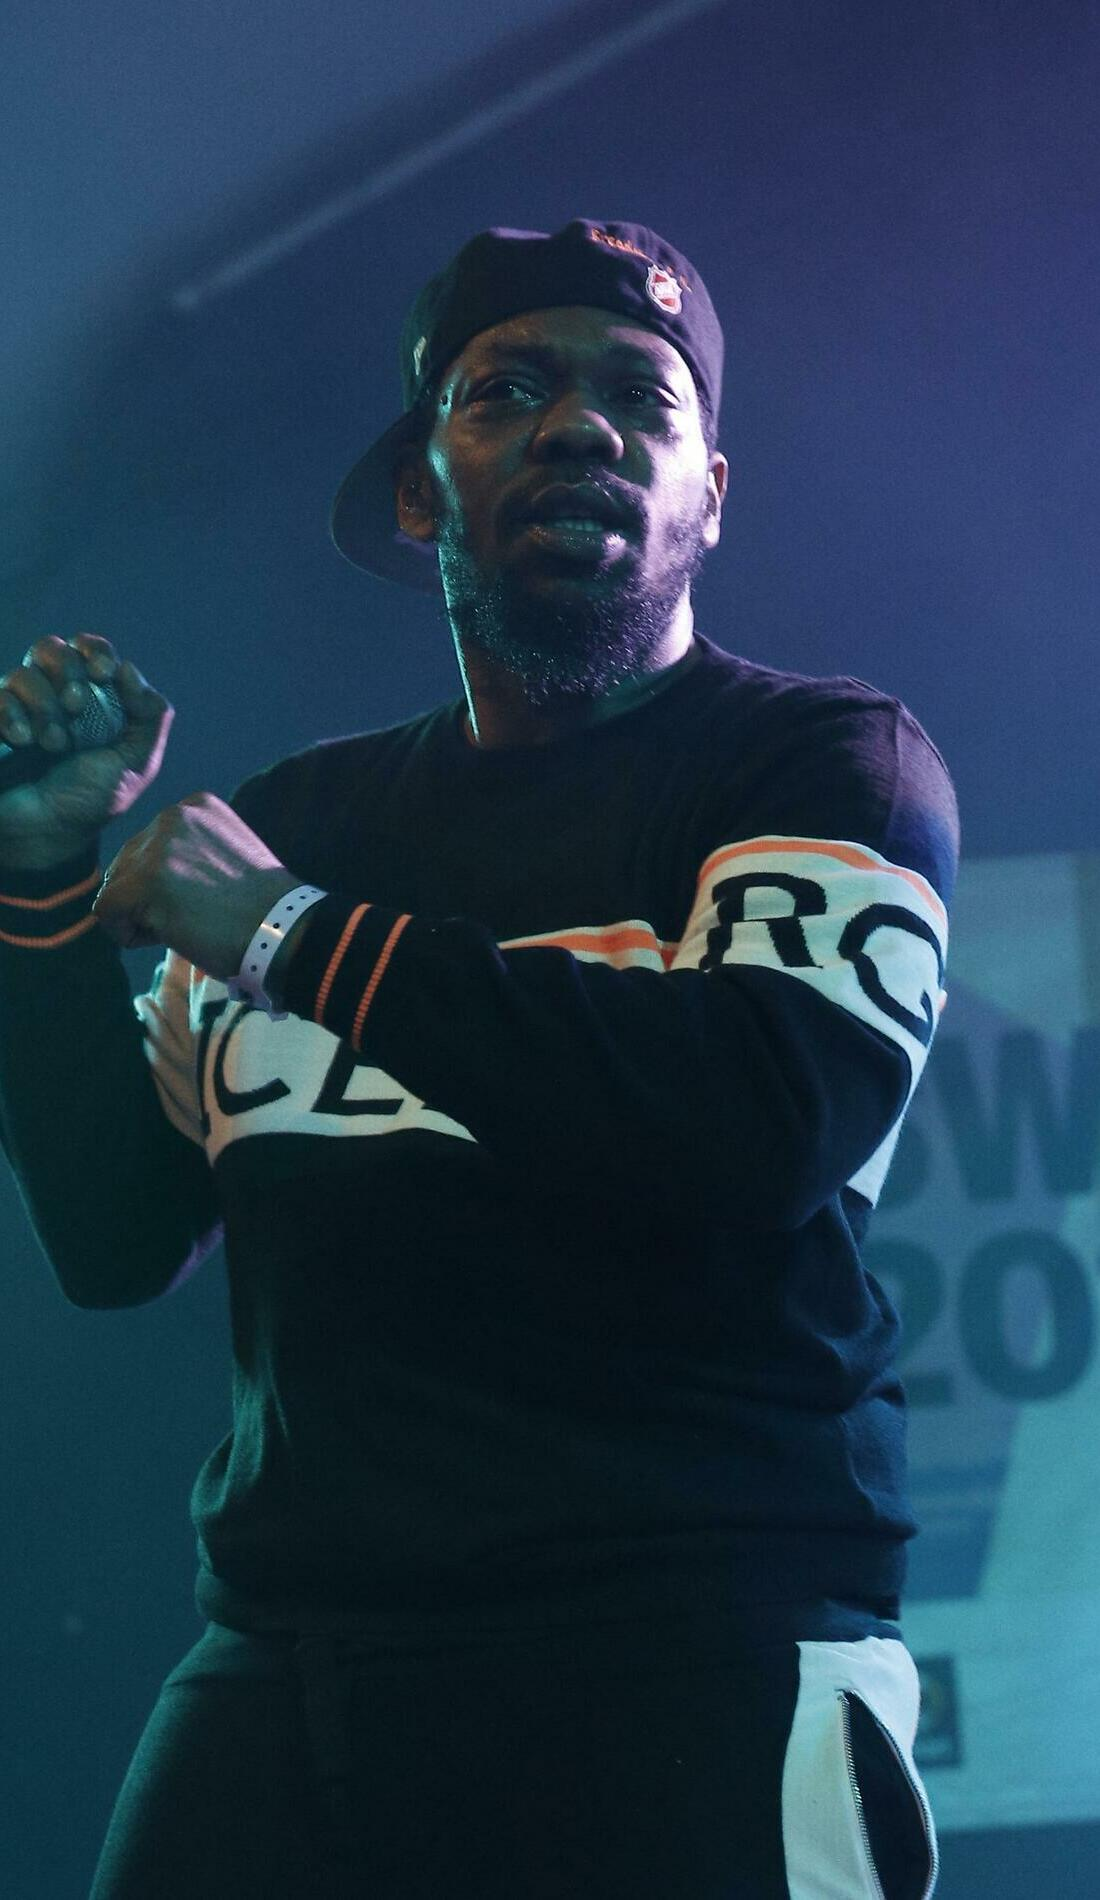 A Beanie Sigel live event